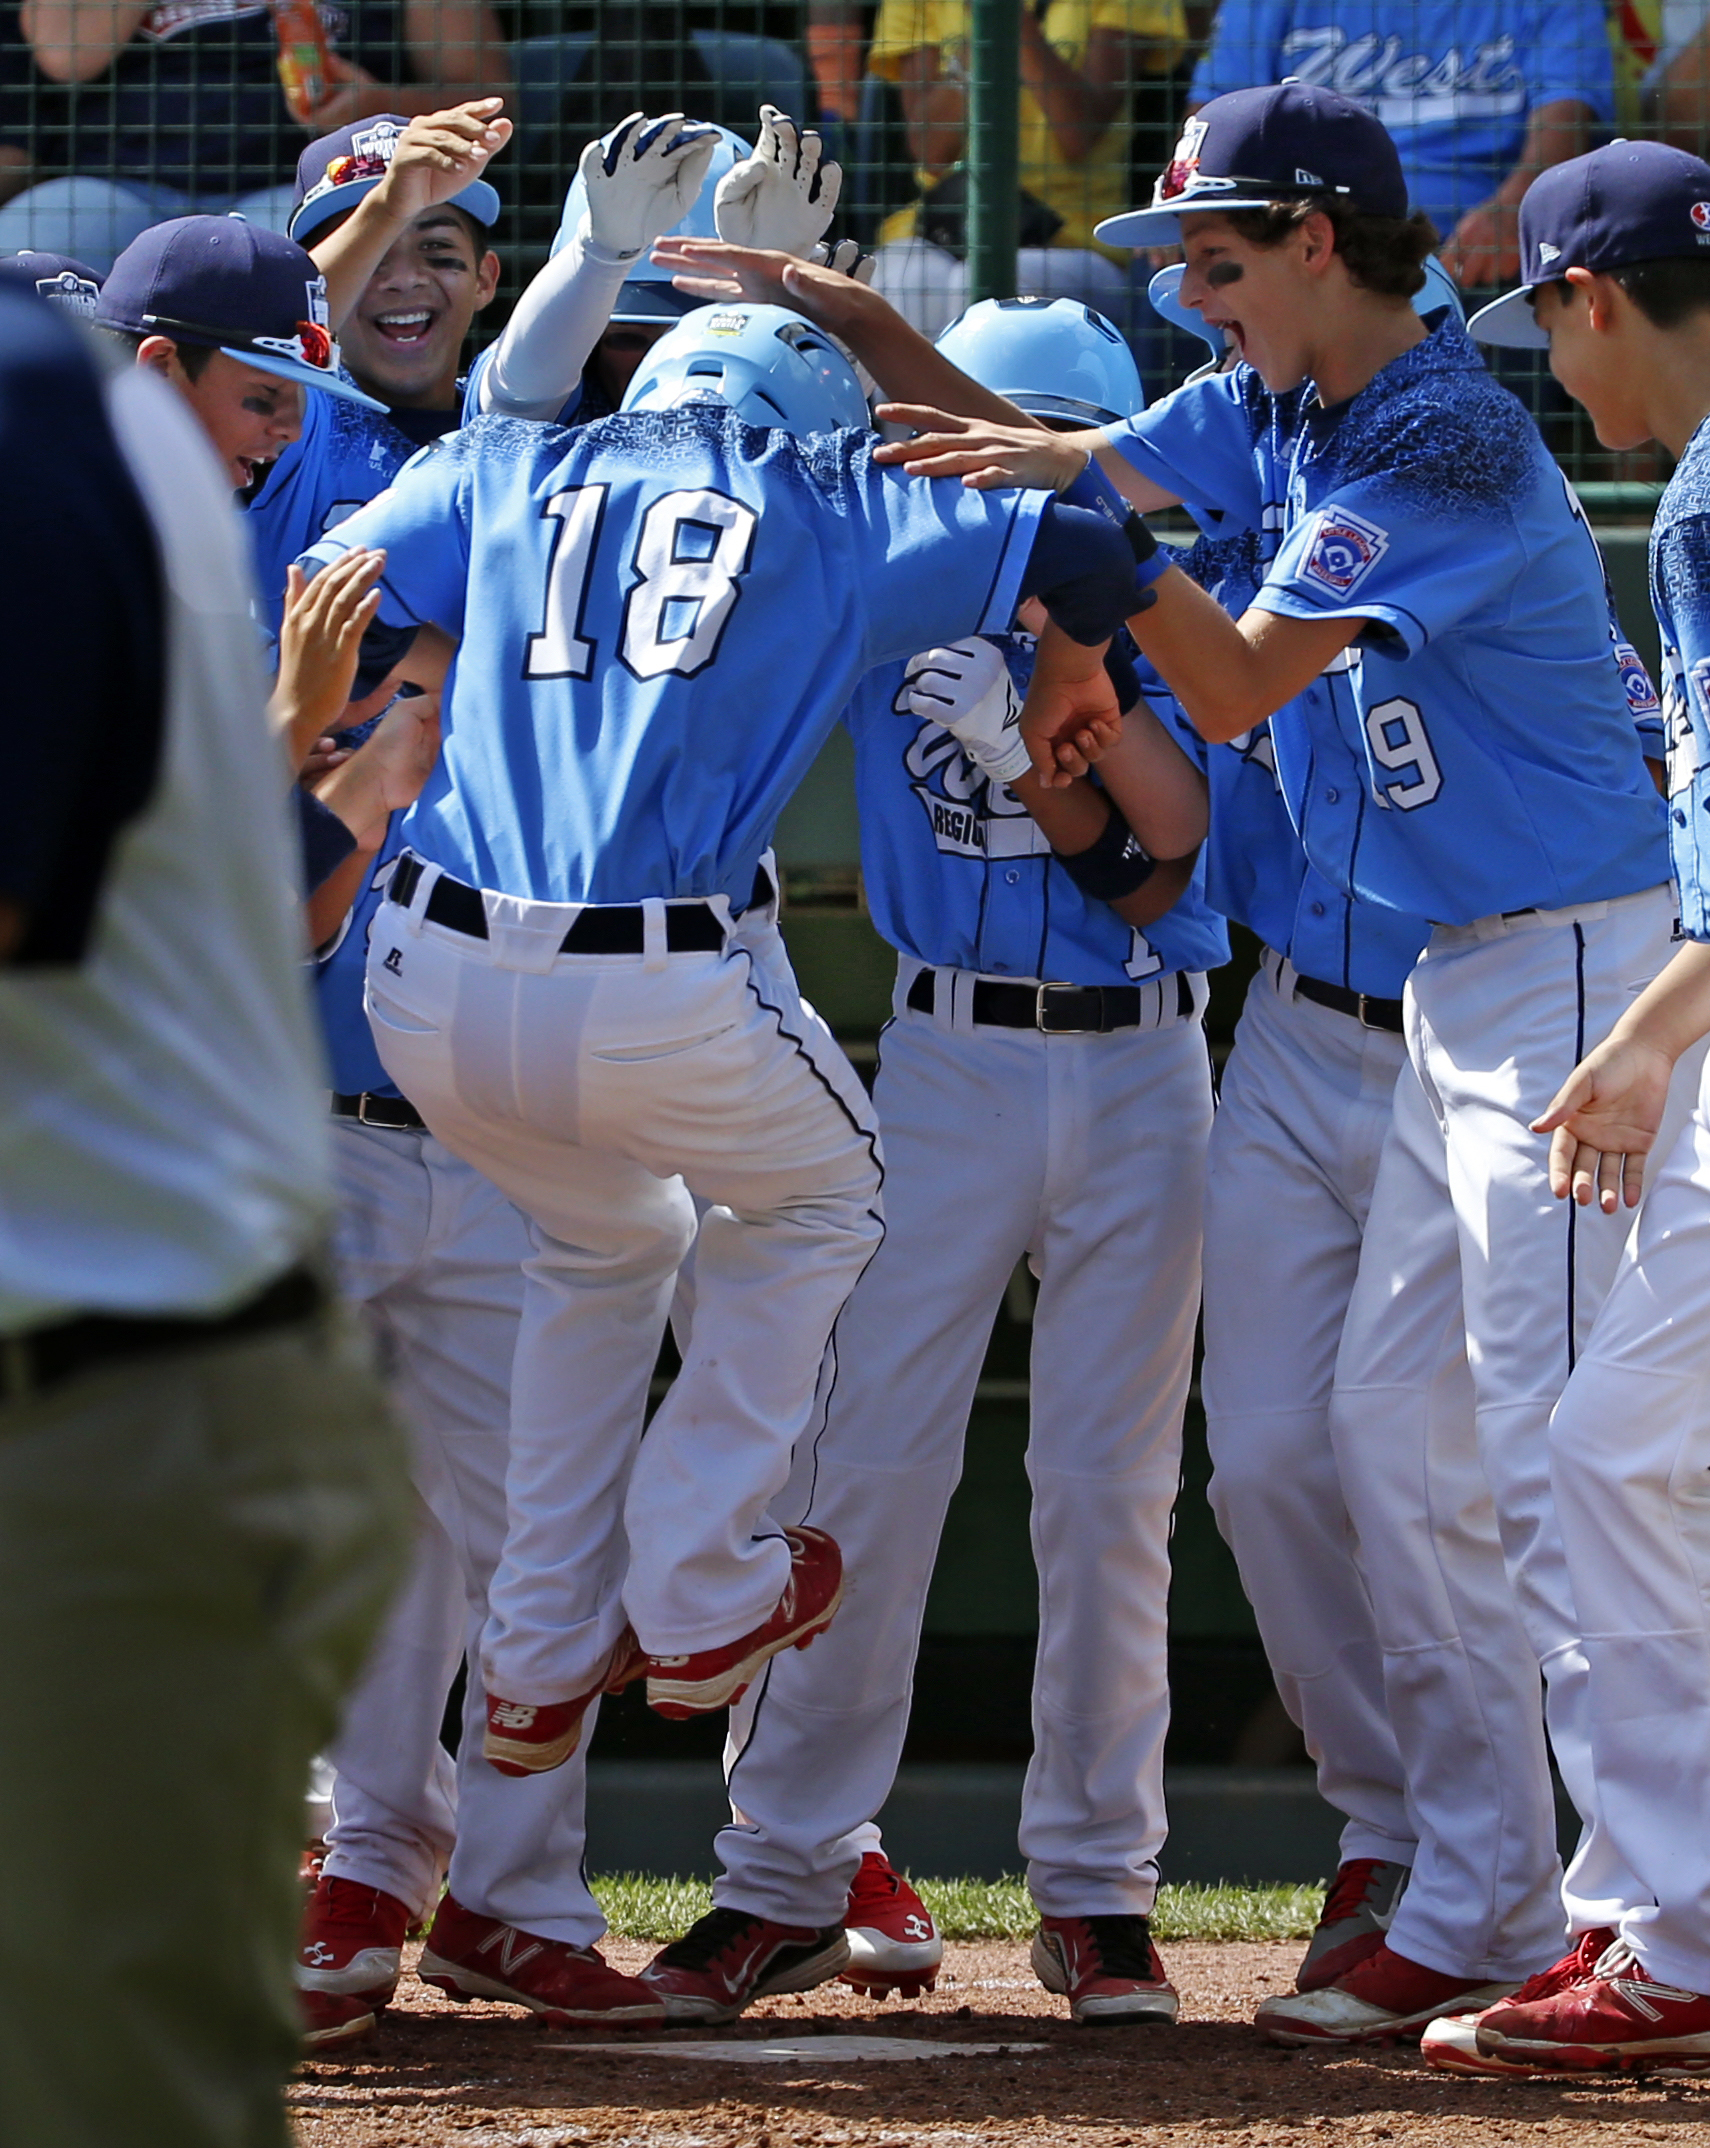 Bonita, California's Nick Maldonado (18) leaps on home plate as he is swarmed by teammates after hitting a grand slam off Bowling Green, Kentucky's Ty Bryant during the third inning of a baseball game in United States pool play at the Little League World